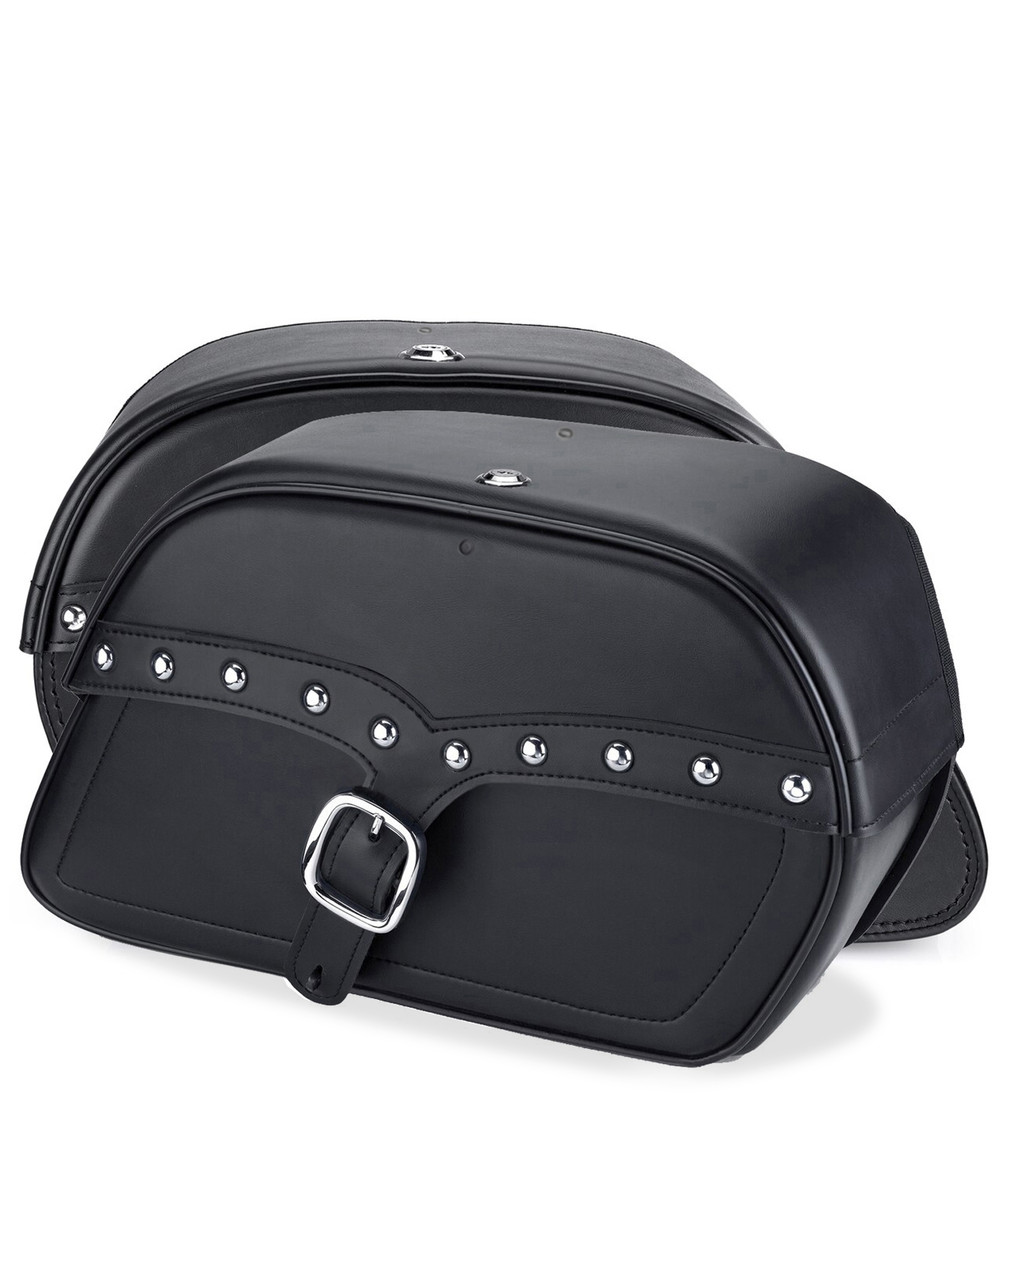 Viking Shock Cutout SS Large Slanted Studded Large Motorcycle Saddlebags For Harley Sportster Forty Eight 48 Both Bags View